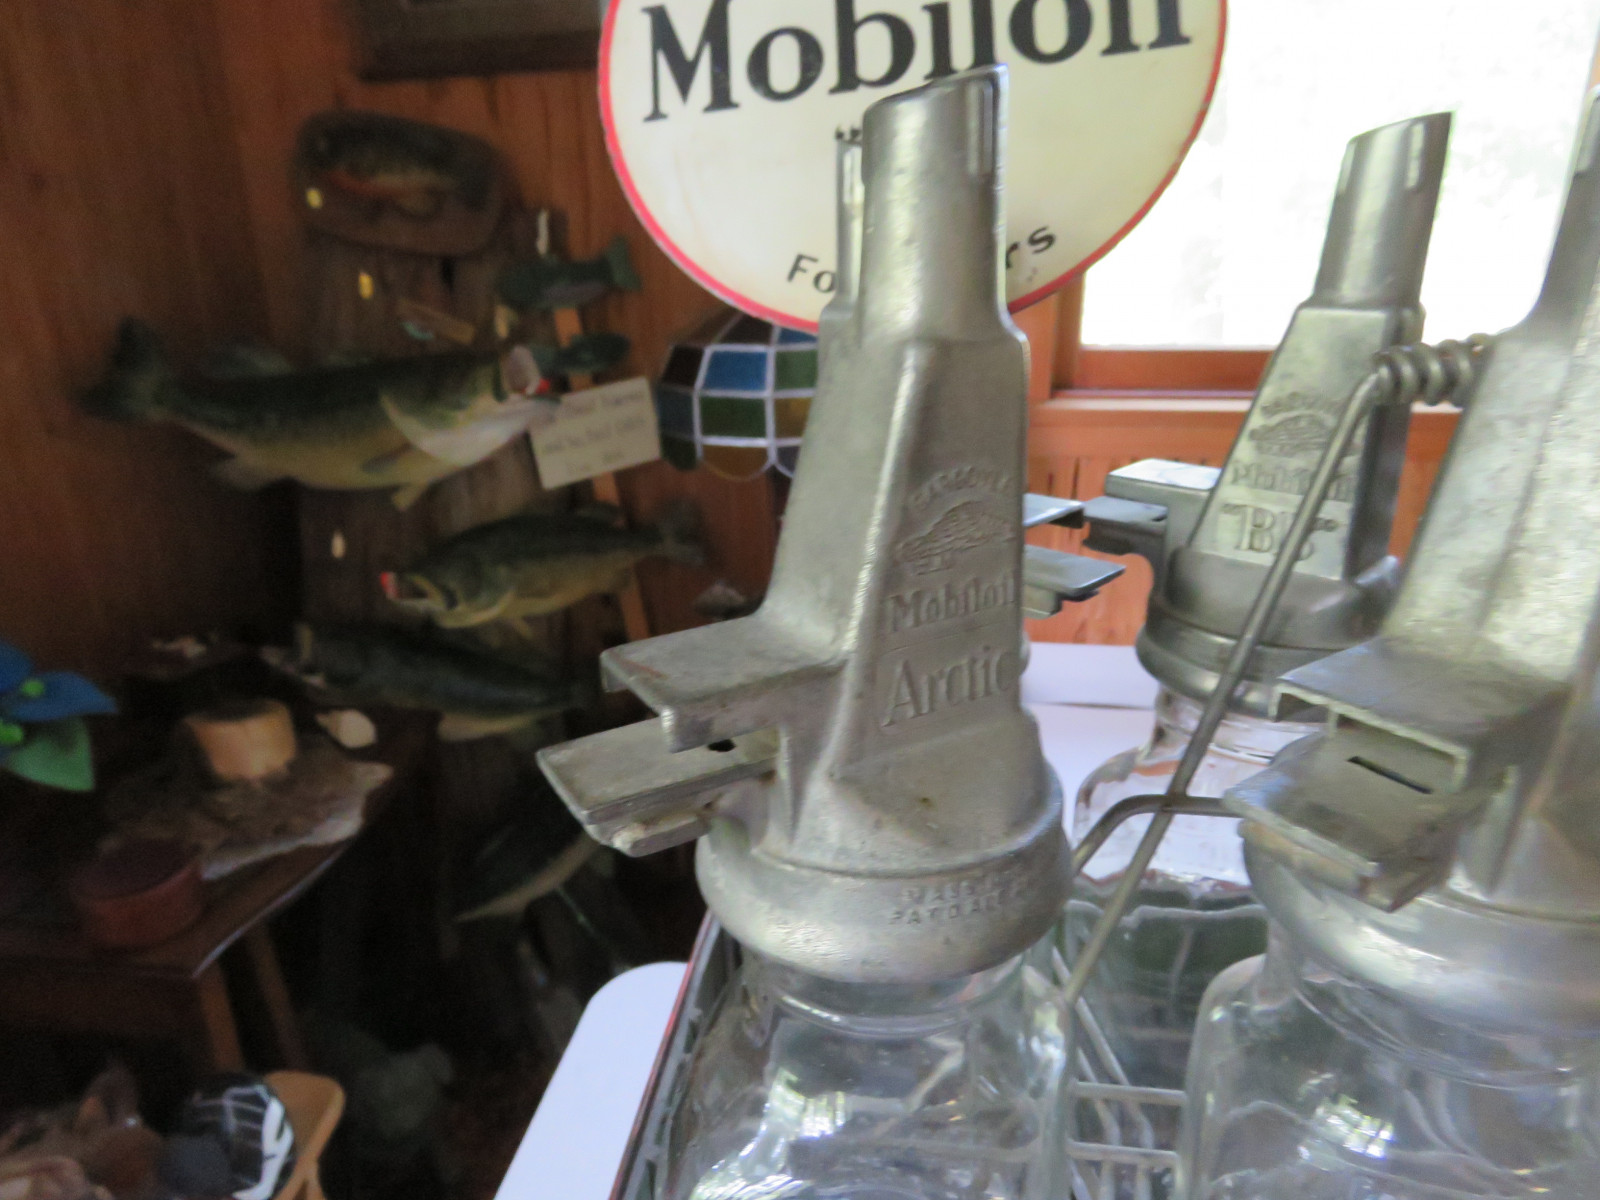 Rare Glass Mobil Oil Bottles in Rack with MobilOil Advertising - Image 3